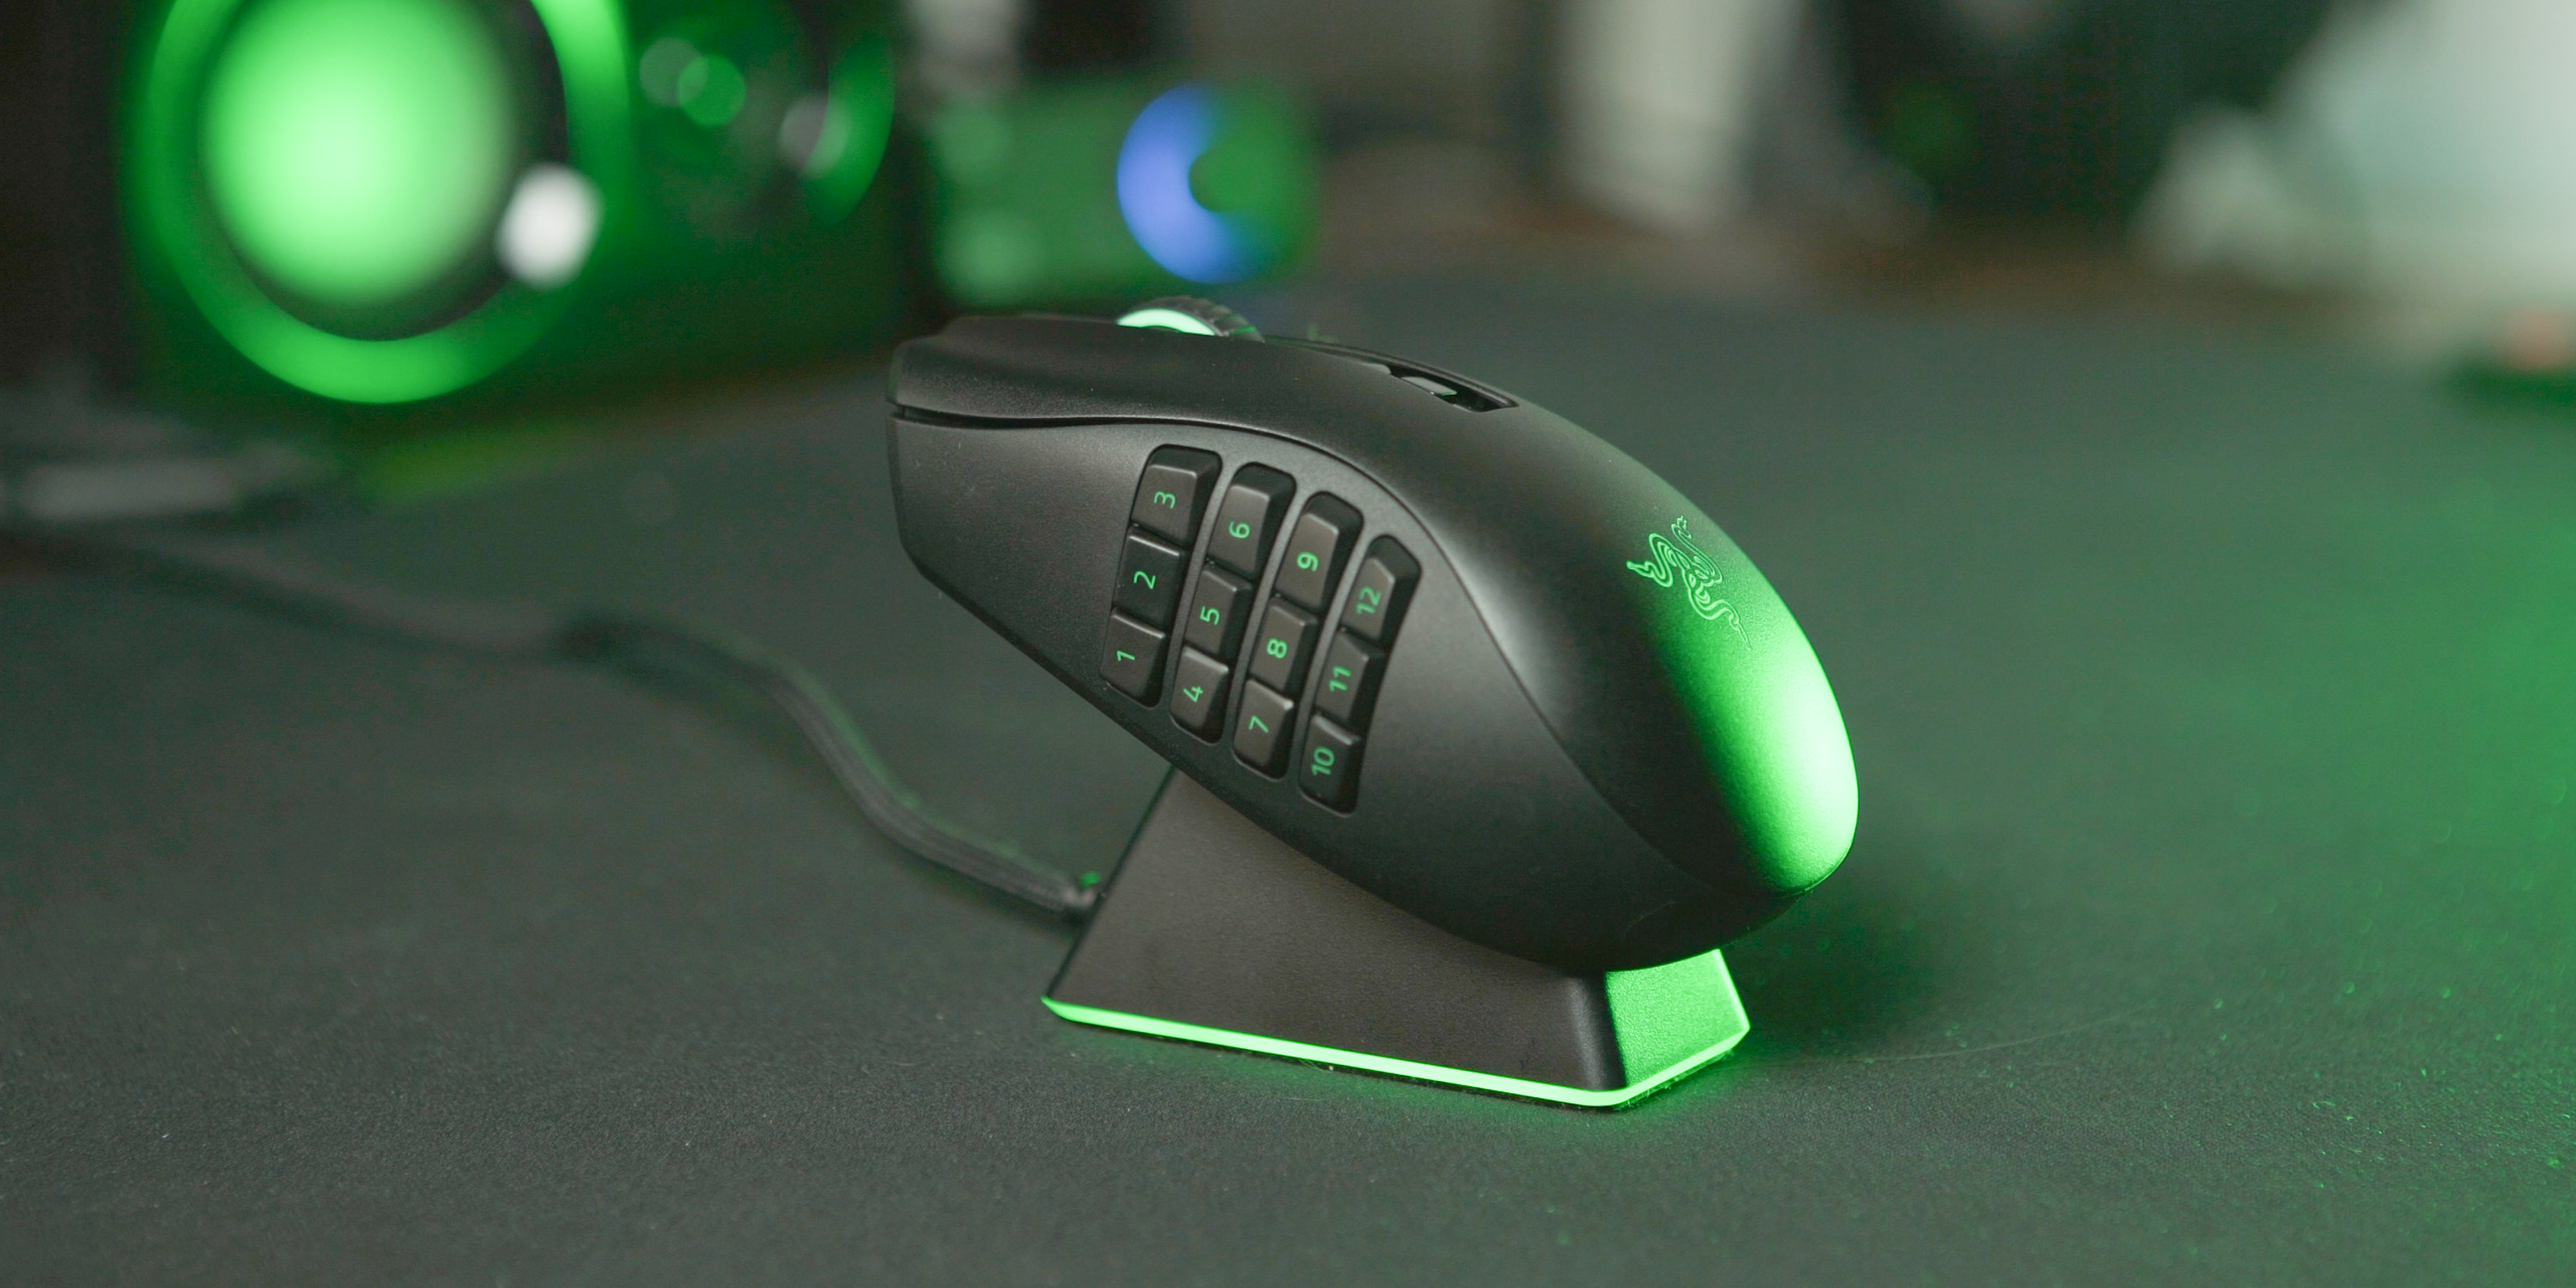 The Naga Pro can also work with the Razer Charging Dock